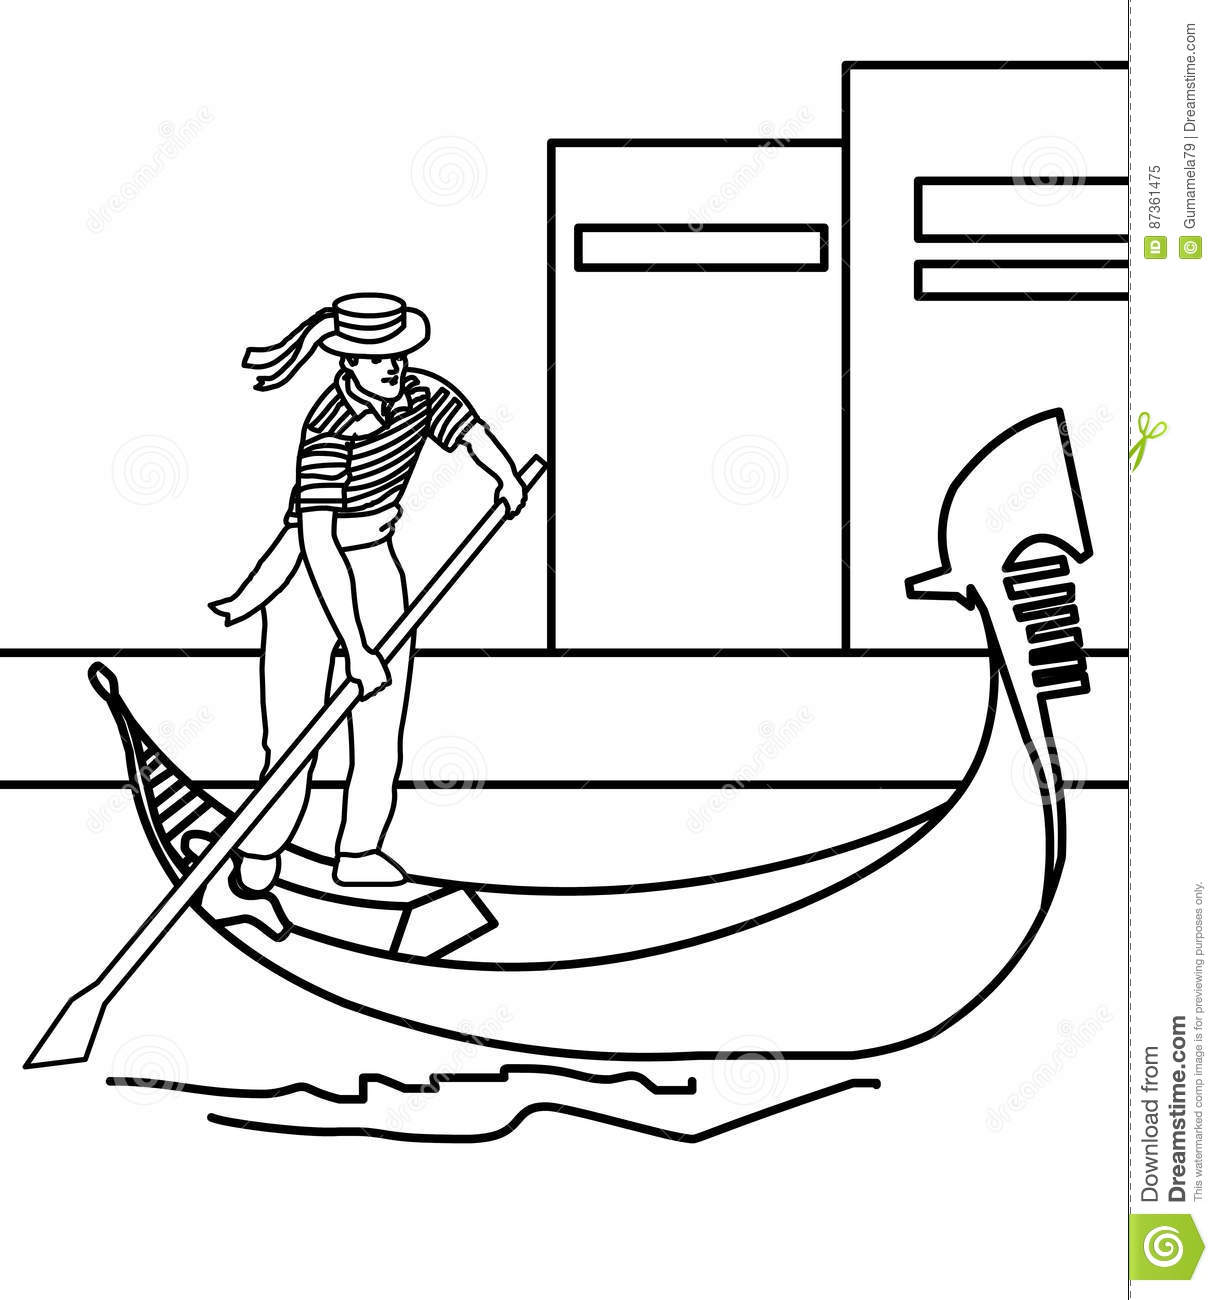 Boy Paddling A Boat Coloring Page Stock Illustration - Illustration ...